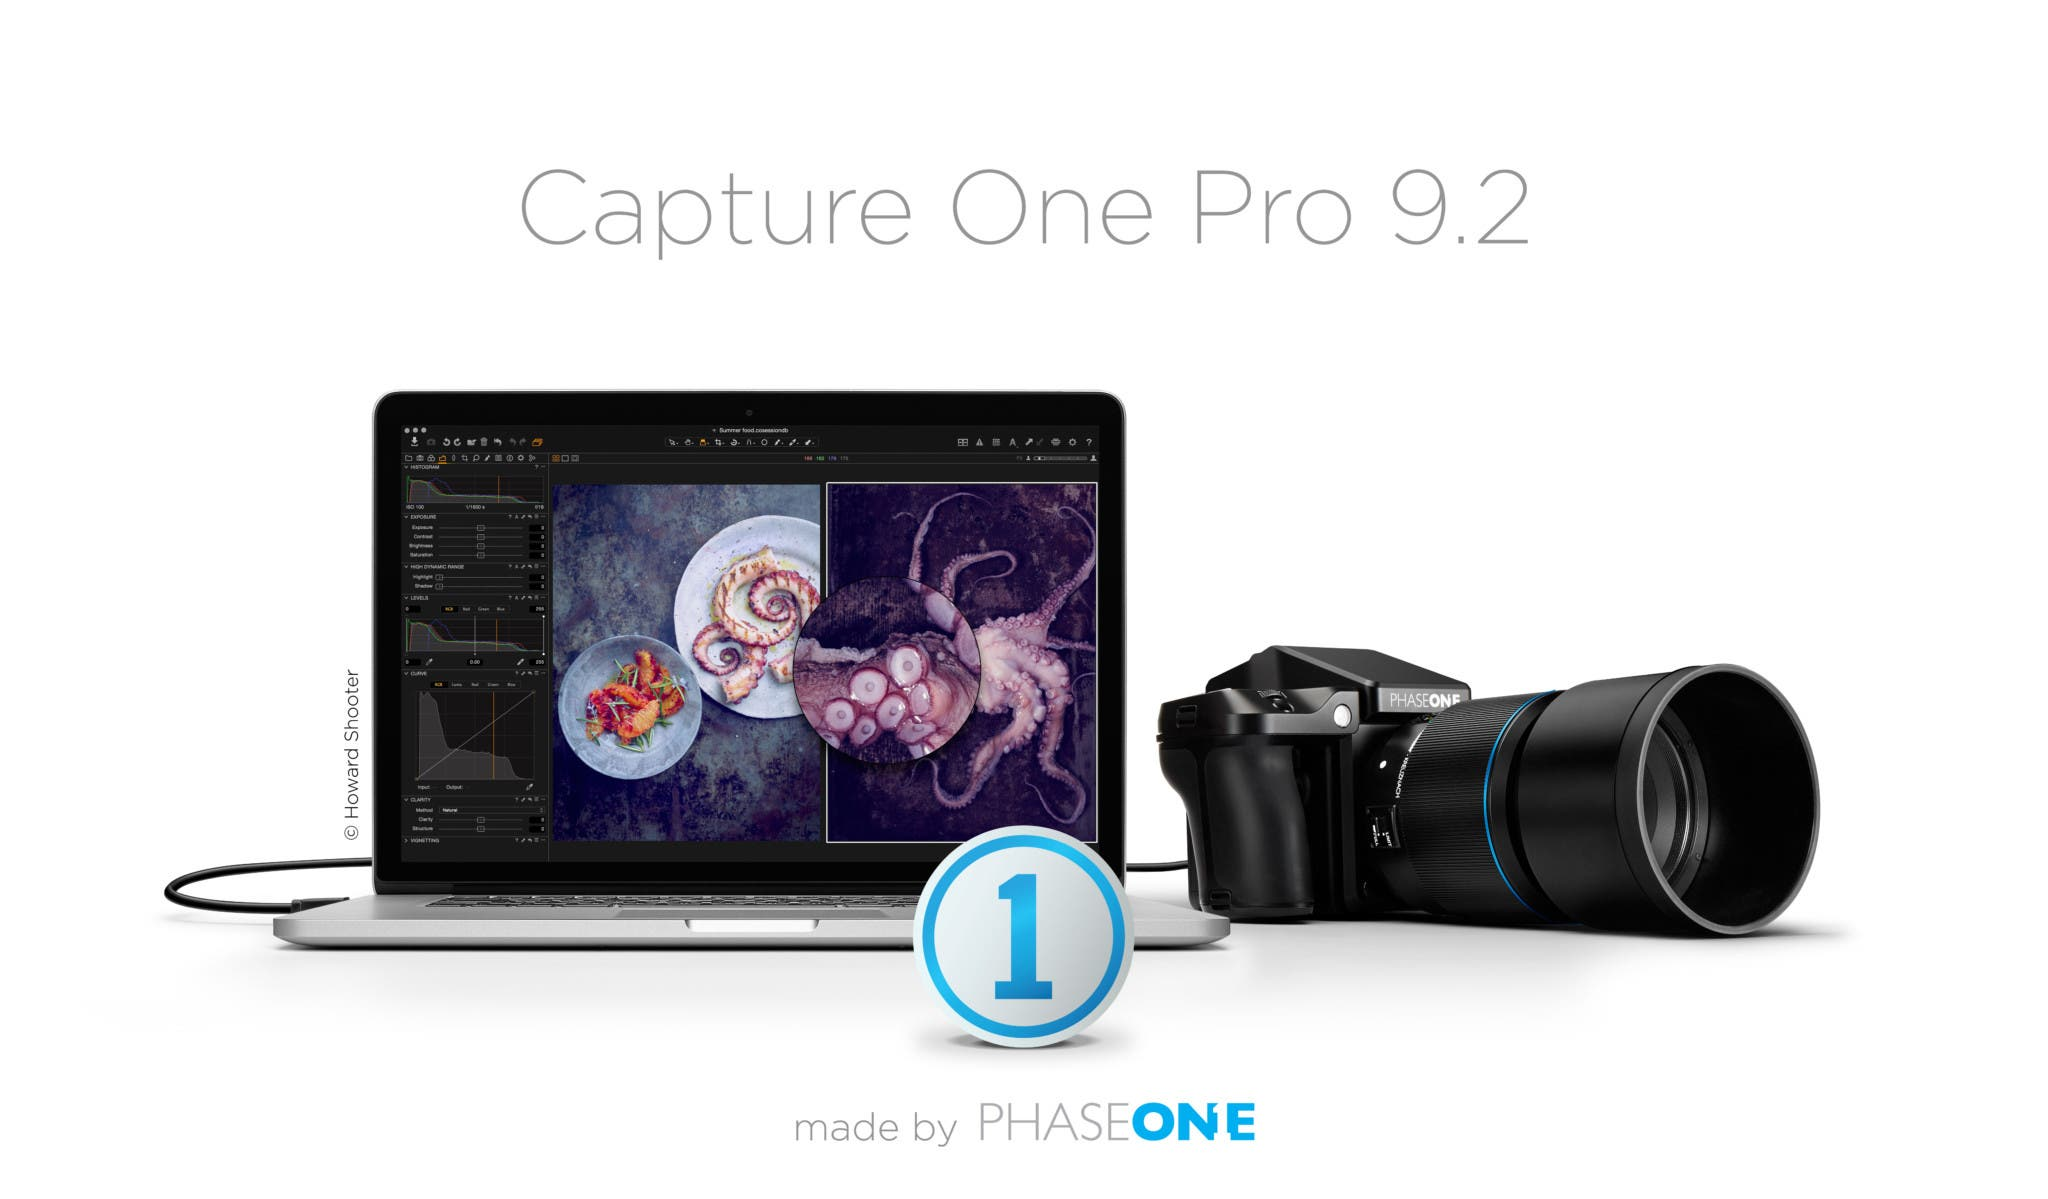 Hot on Adobe's Heels, Phase One Launches Capture One Pro 9.2 Update